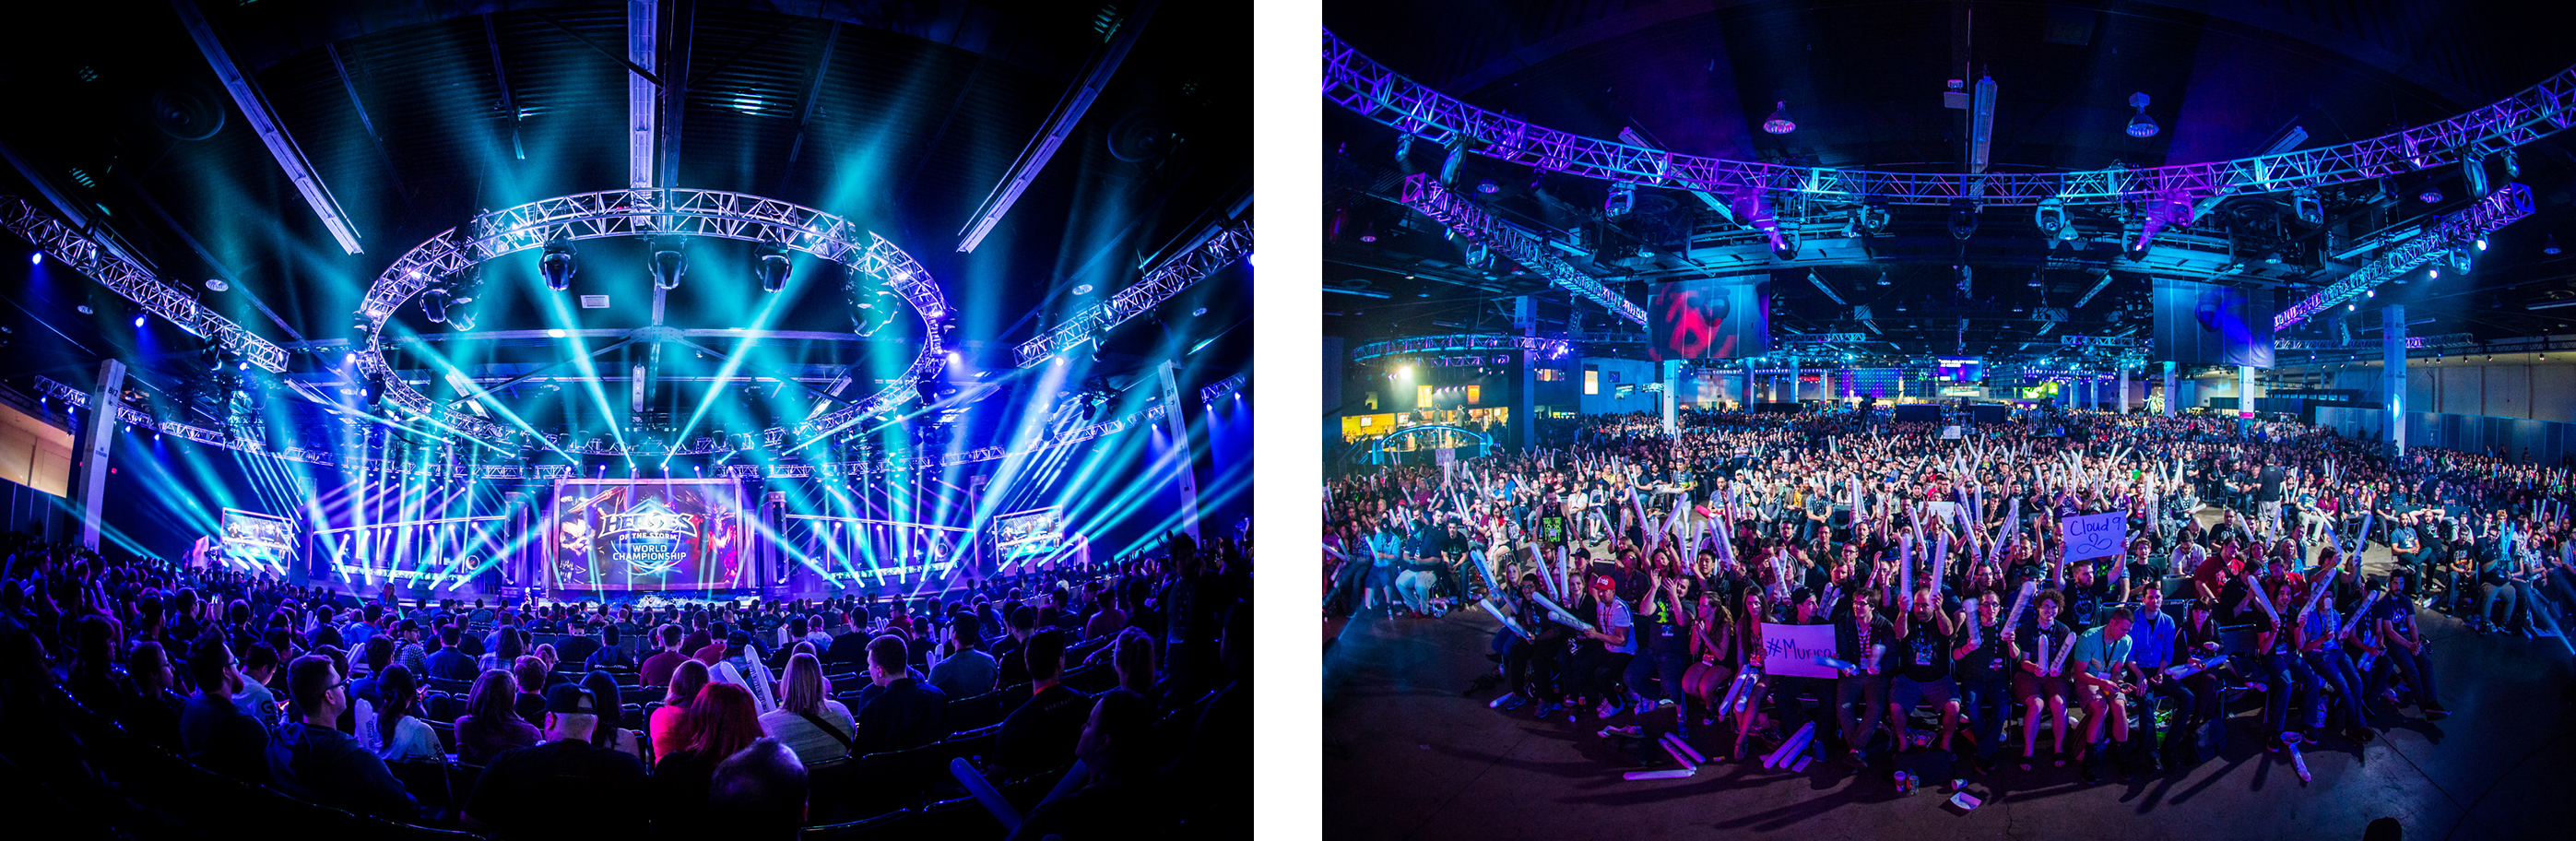 blizzcon-stage-crowd